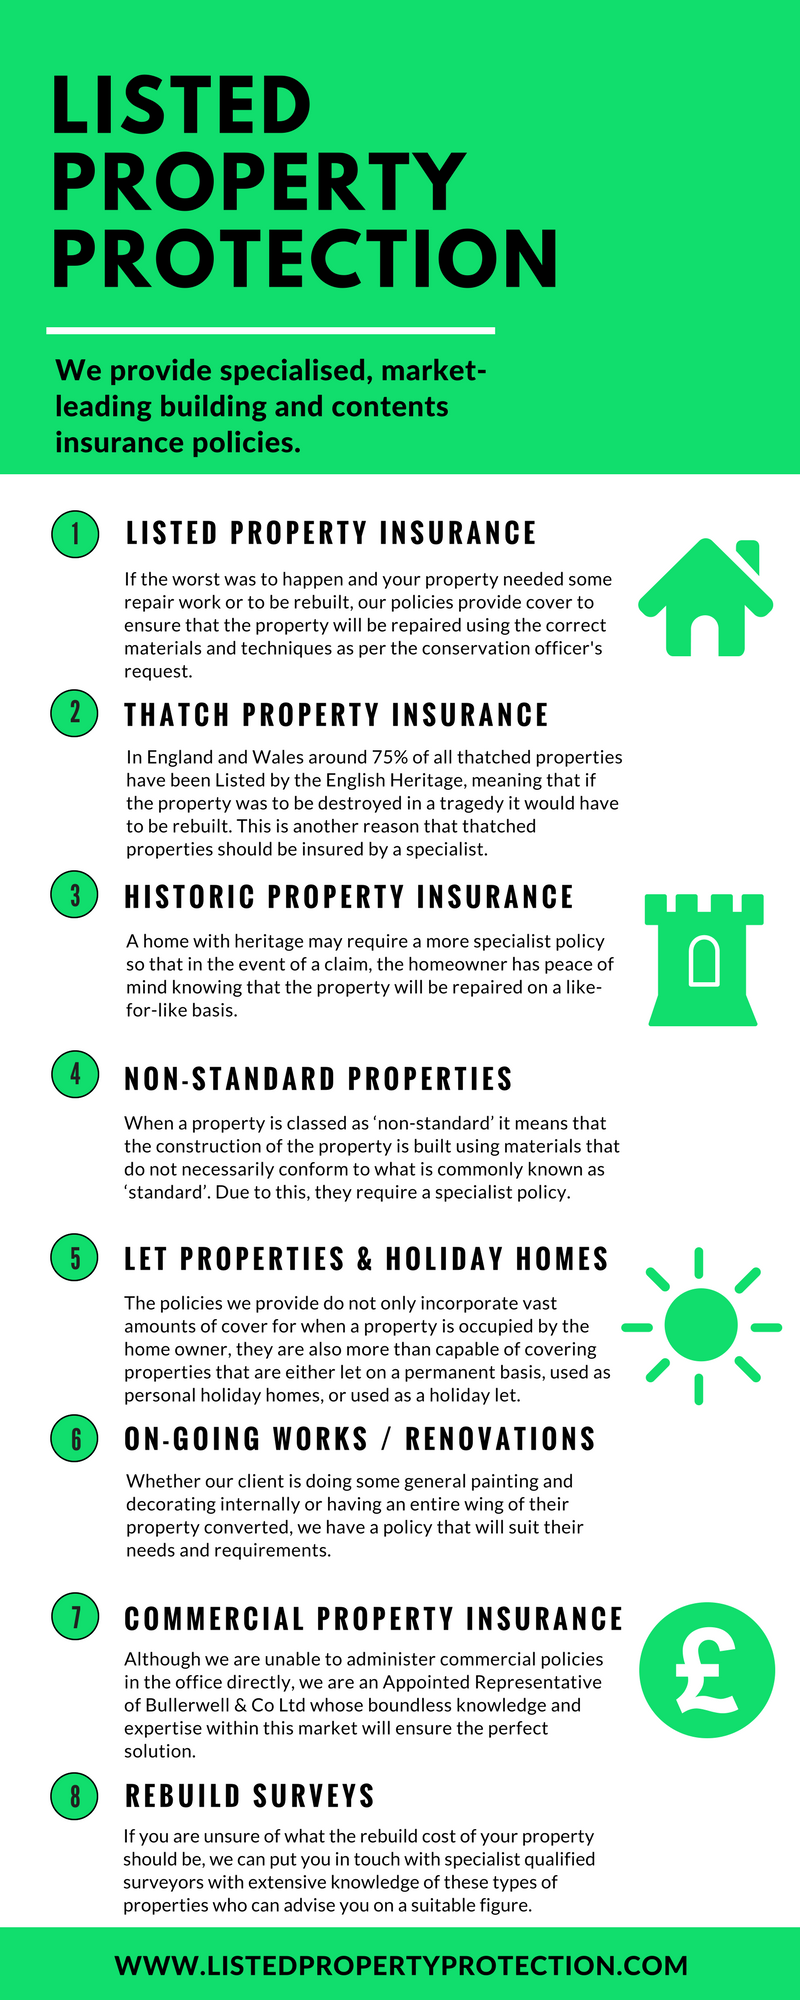 Types of Listed Property Protection